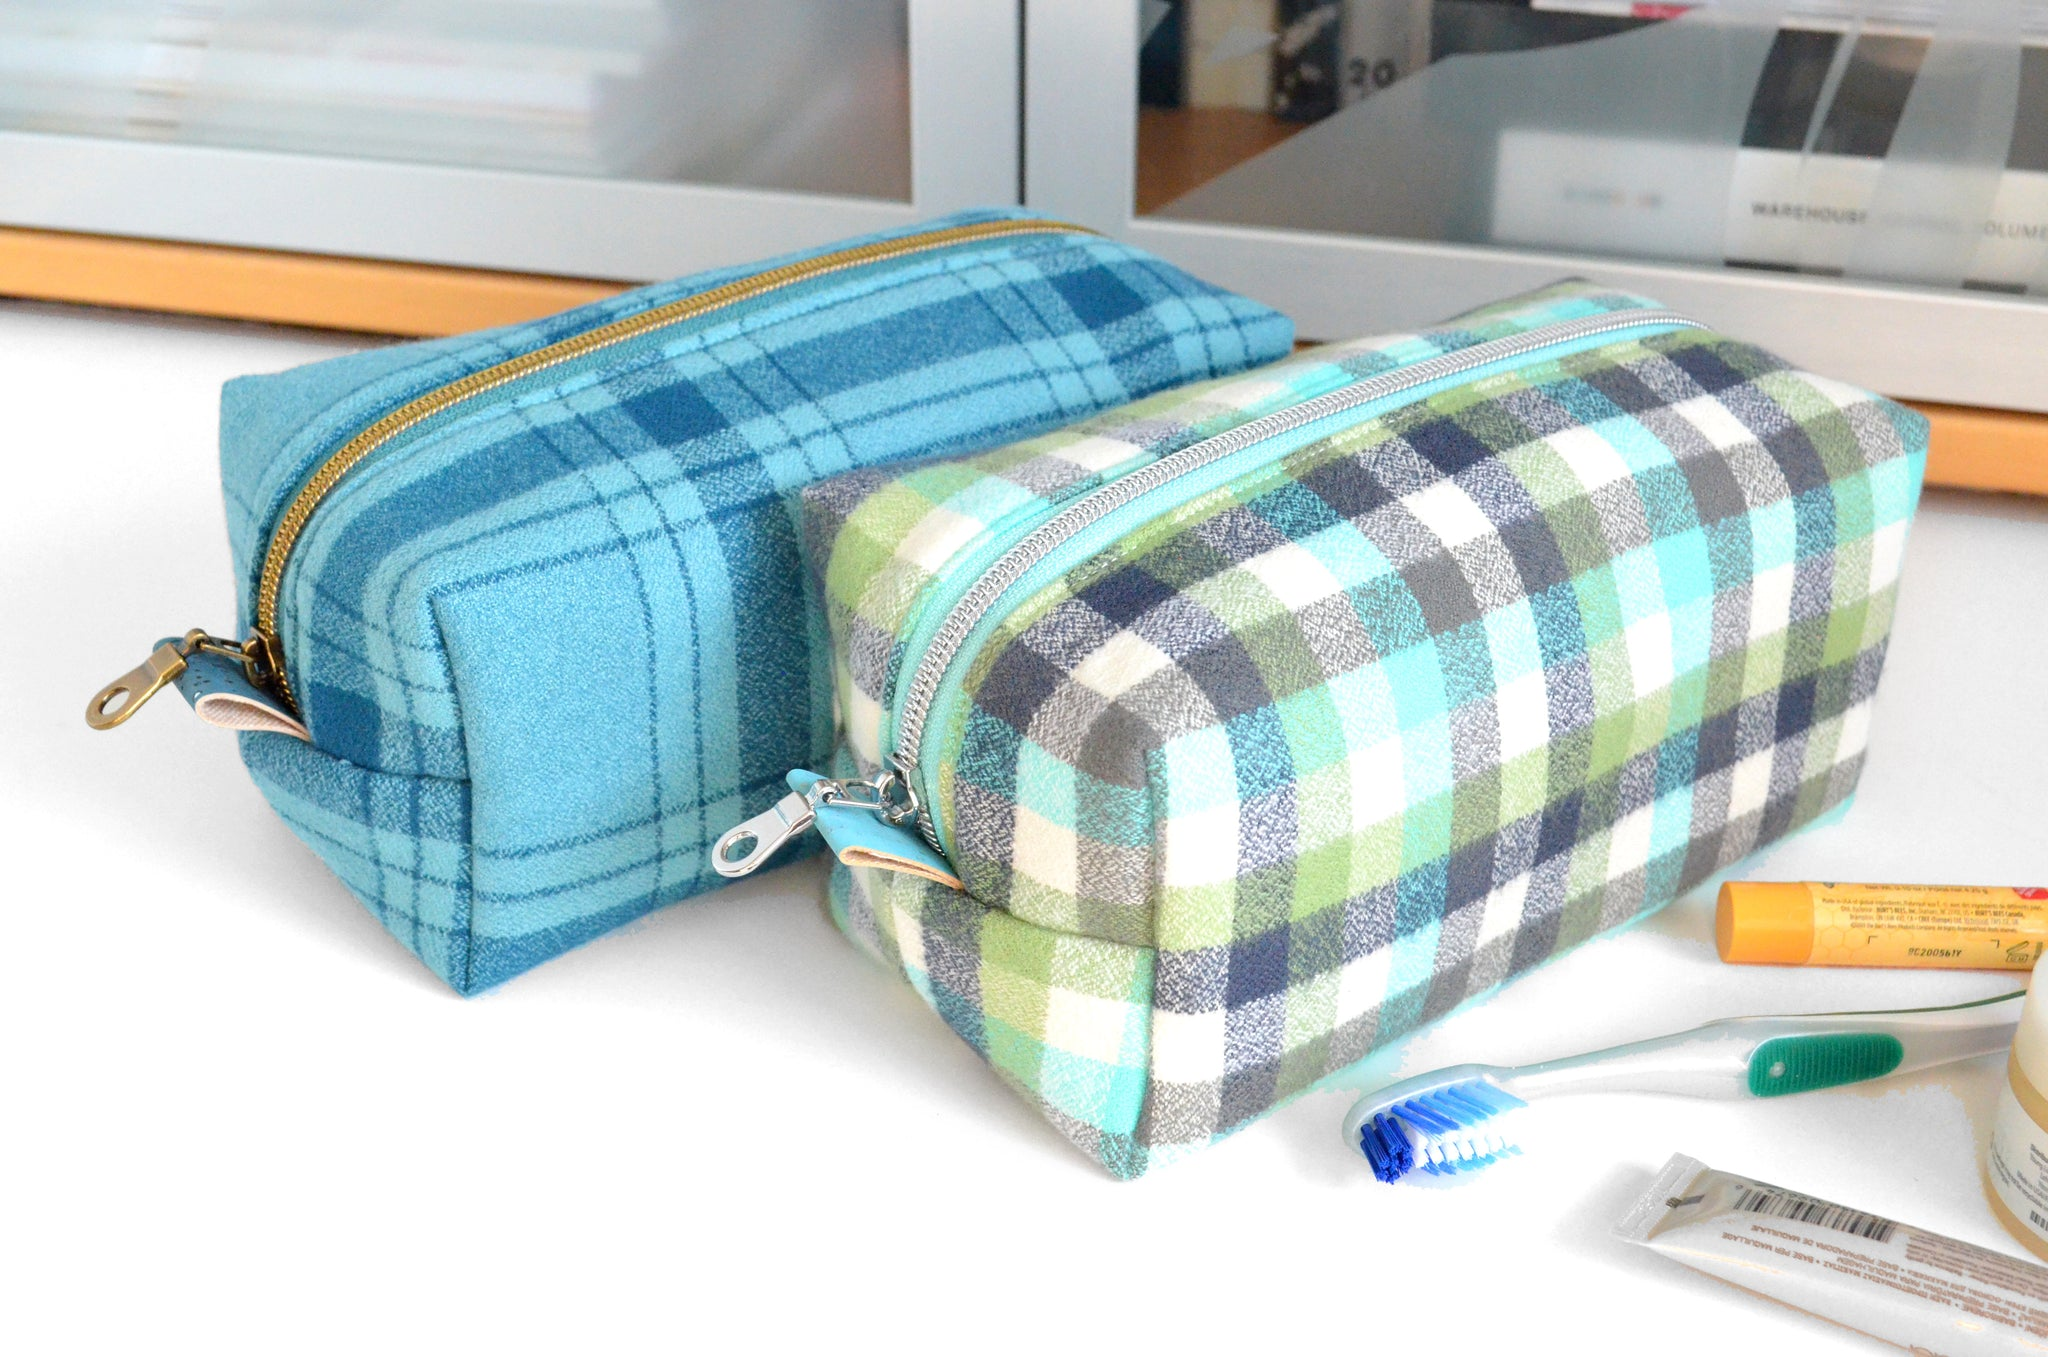 Green & Blue Plaid Flannel Boxy Toiletry Bag